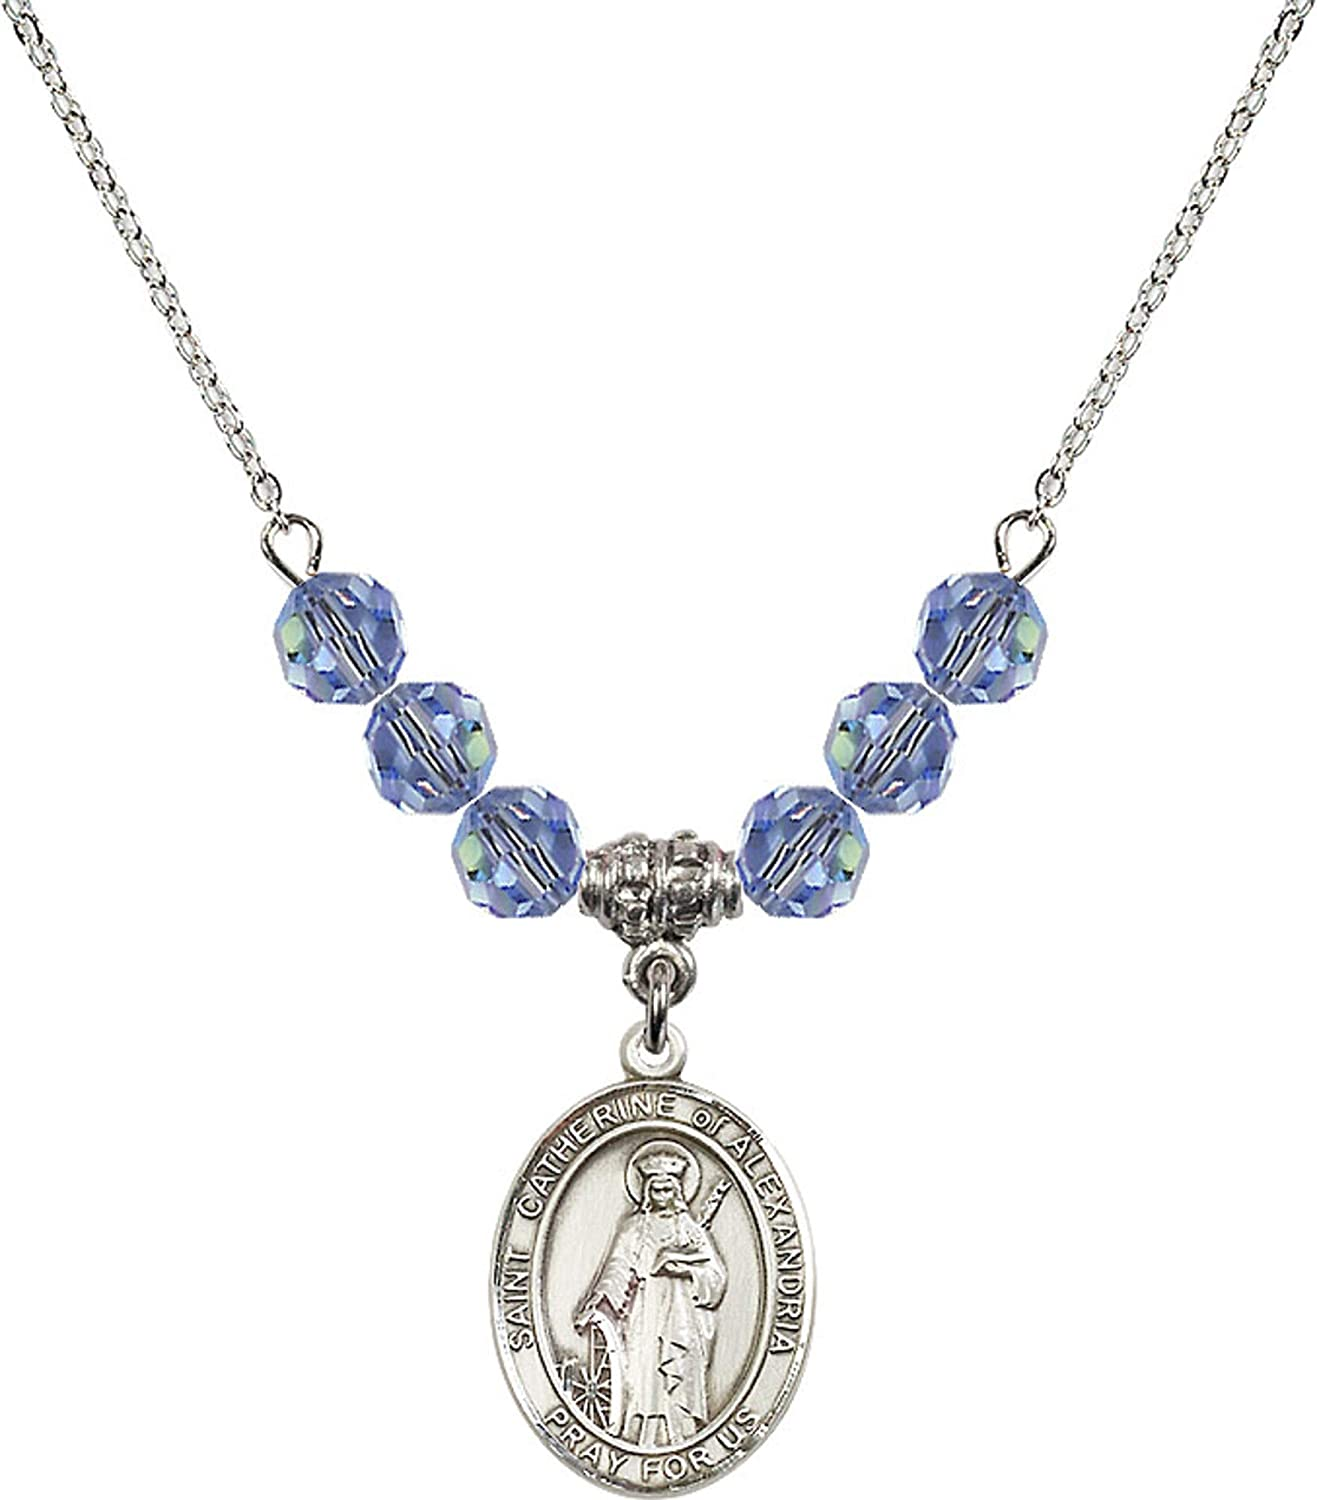 Bonyak Jewelry 18 Inch Rhodium Plated Necklace w// 6mm Light Blue September Birth Month Stone Beads and Saint Catherine of Alexandria Charm